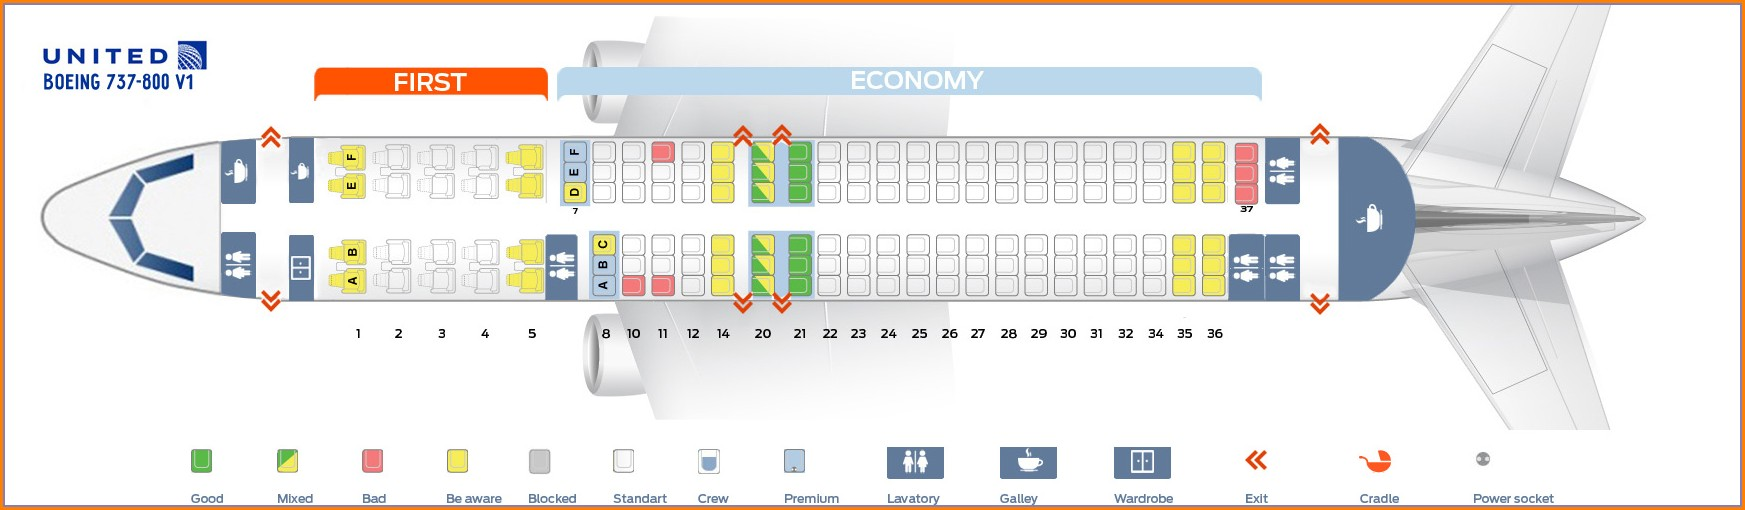 Klm Flight 612 Seat Map